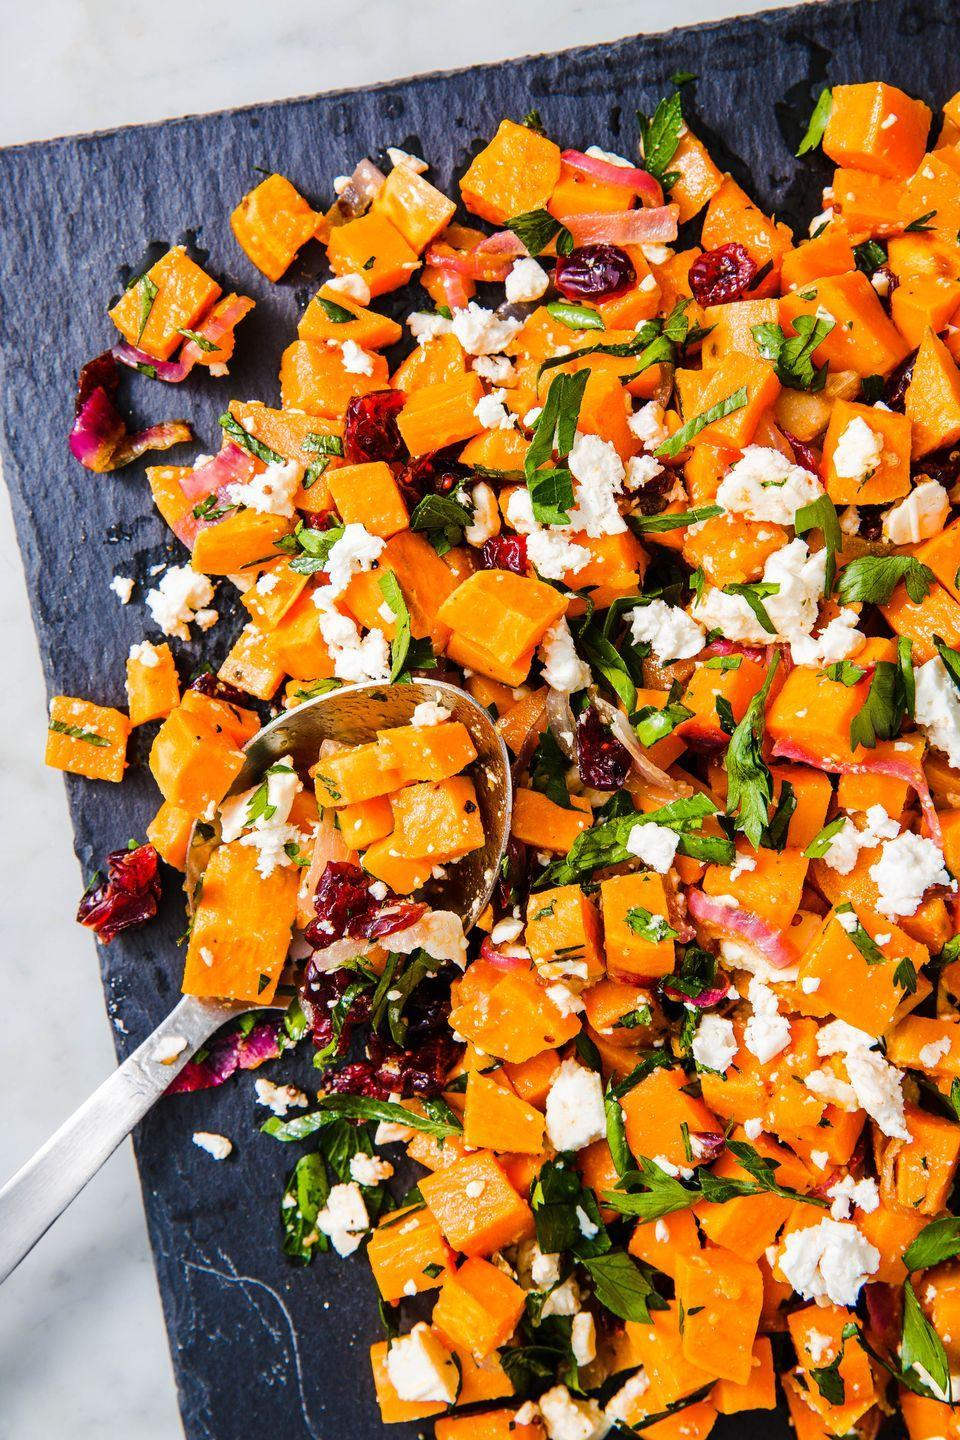 "<p>Try it with leafy greens, in a wrap, or topped with a fried egg. </p><p>Get the recipe from <a href=""https://www.delish.com/cooking/recipe-ideas/a23362341/sweet-potato-salad-recipe/"" rel=""nofollow noopener"" target=""_blank"" data-ylk=""slk:Delish"" class=""link rapid-noclick-resp"">Delish</a>. </p>"